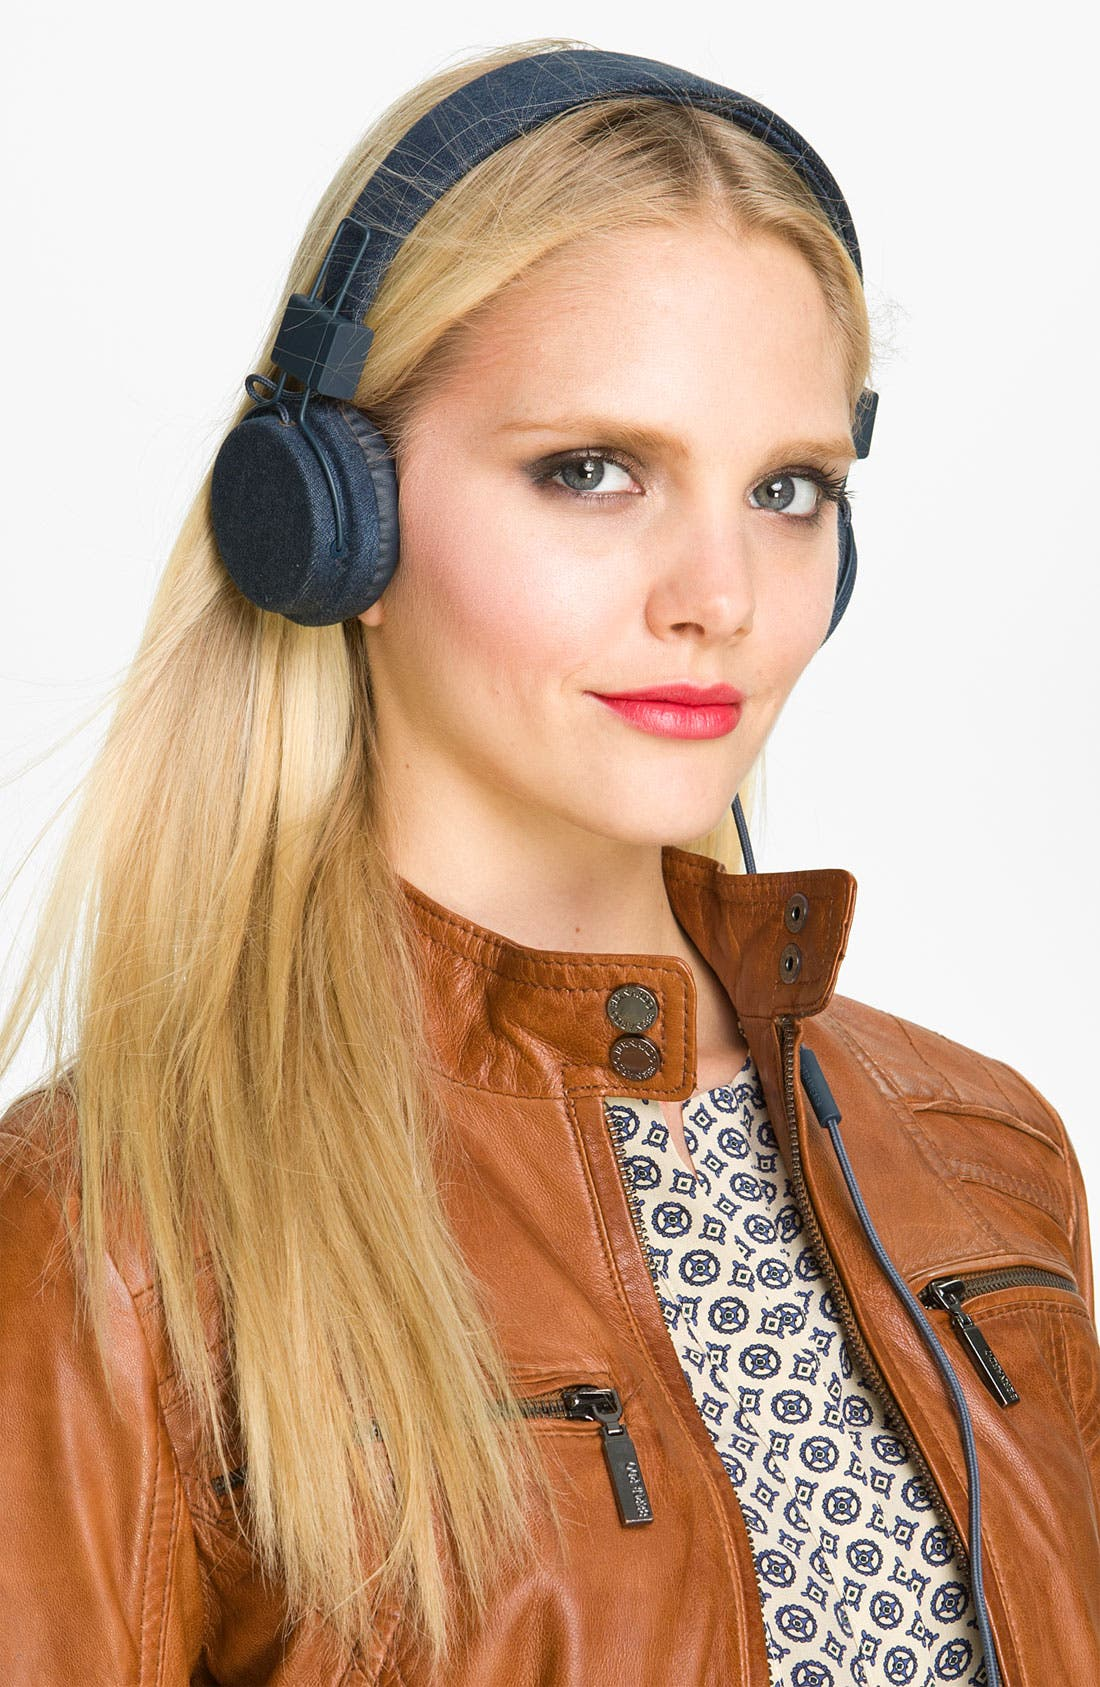 Alternate Image 1 Selected - Urbanears 'Plattan' Denim Edition Headphones